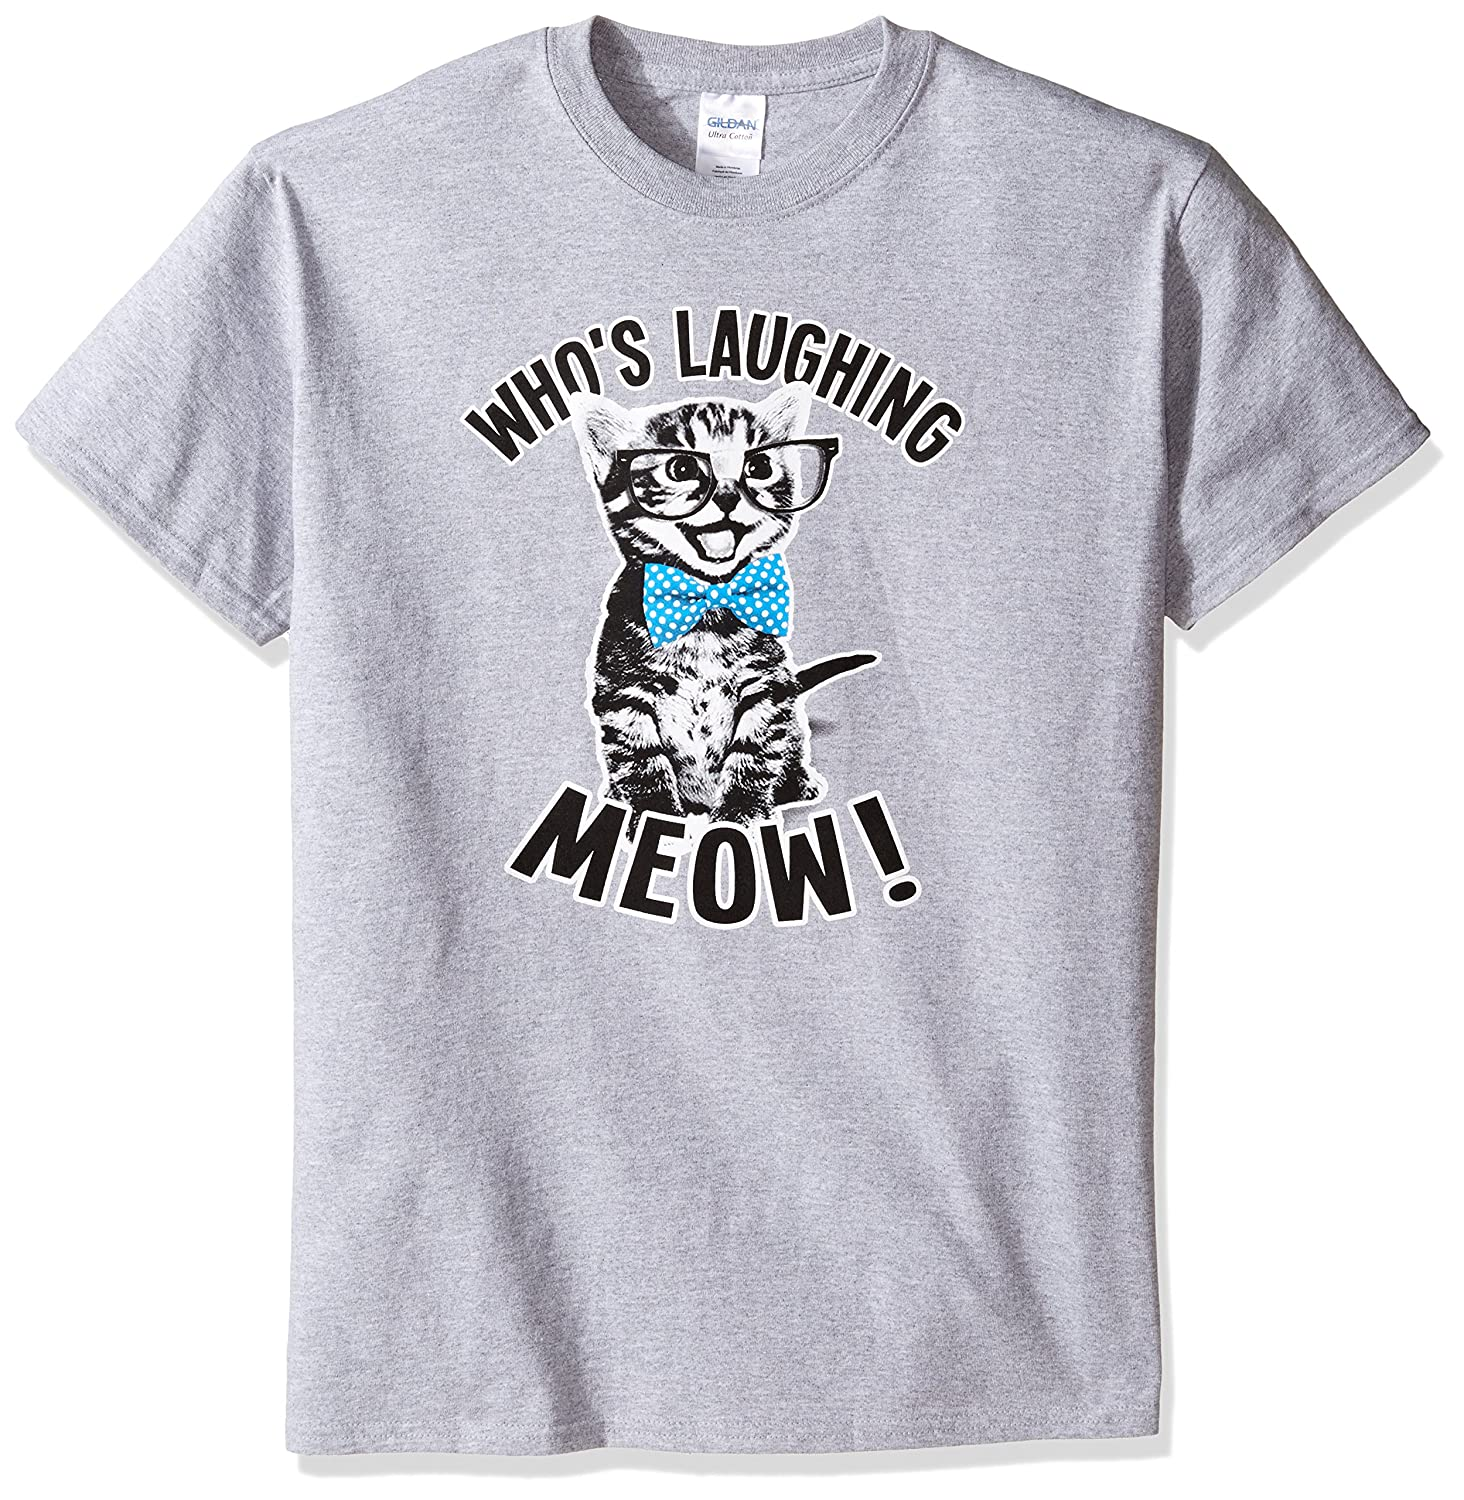 TLine Who's Laughing Meow T-shirt